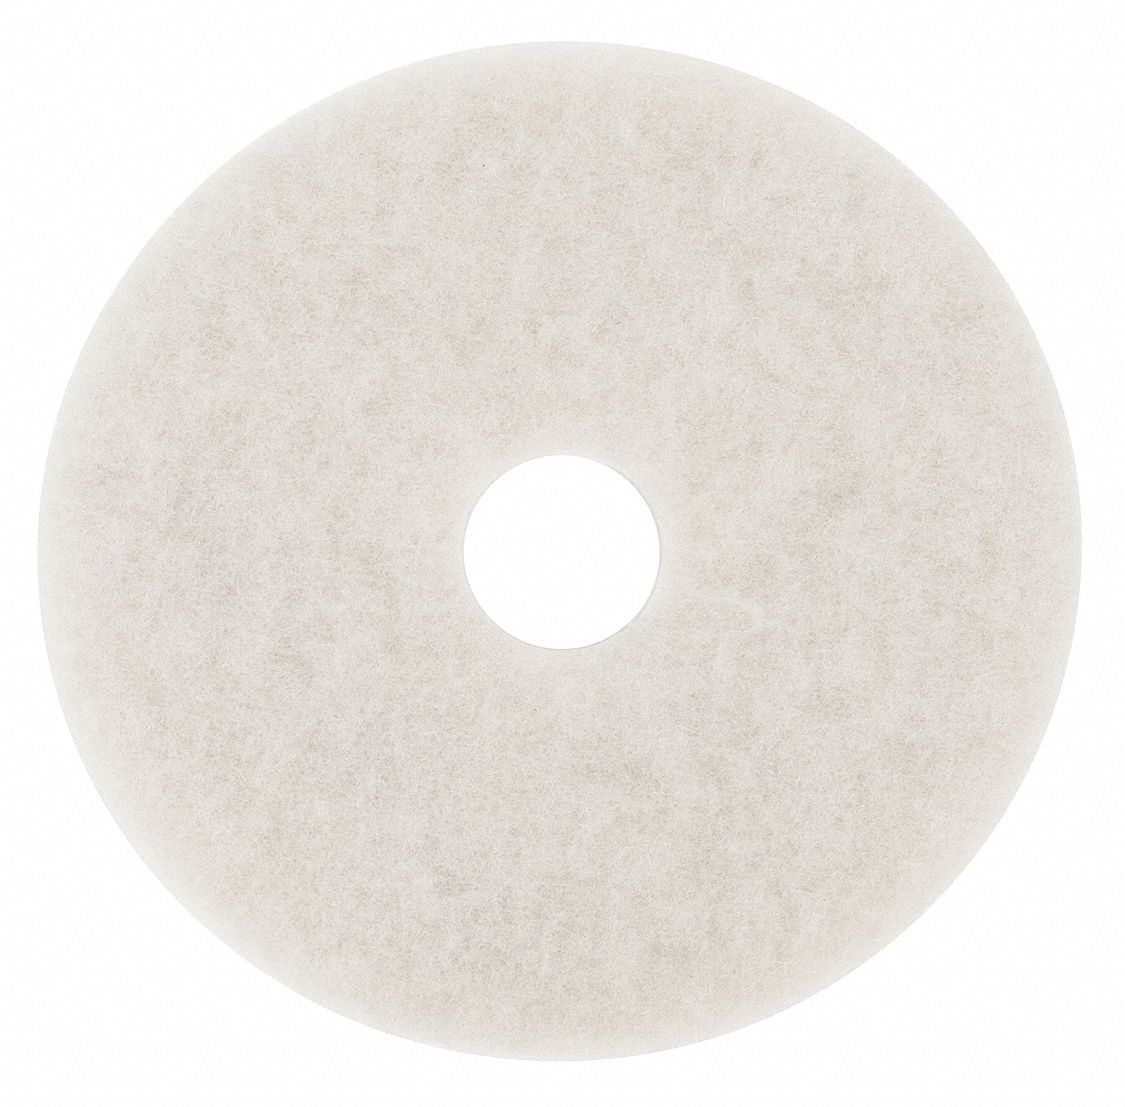 13 in Non-Woven Polyester Fiber Round Buffing and Cleaning Pad, 175 to 600 rpm, White, 5 PK